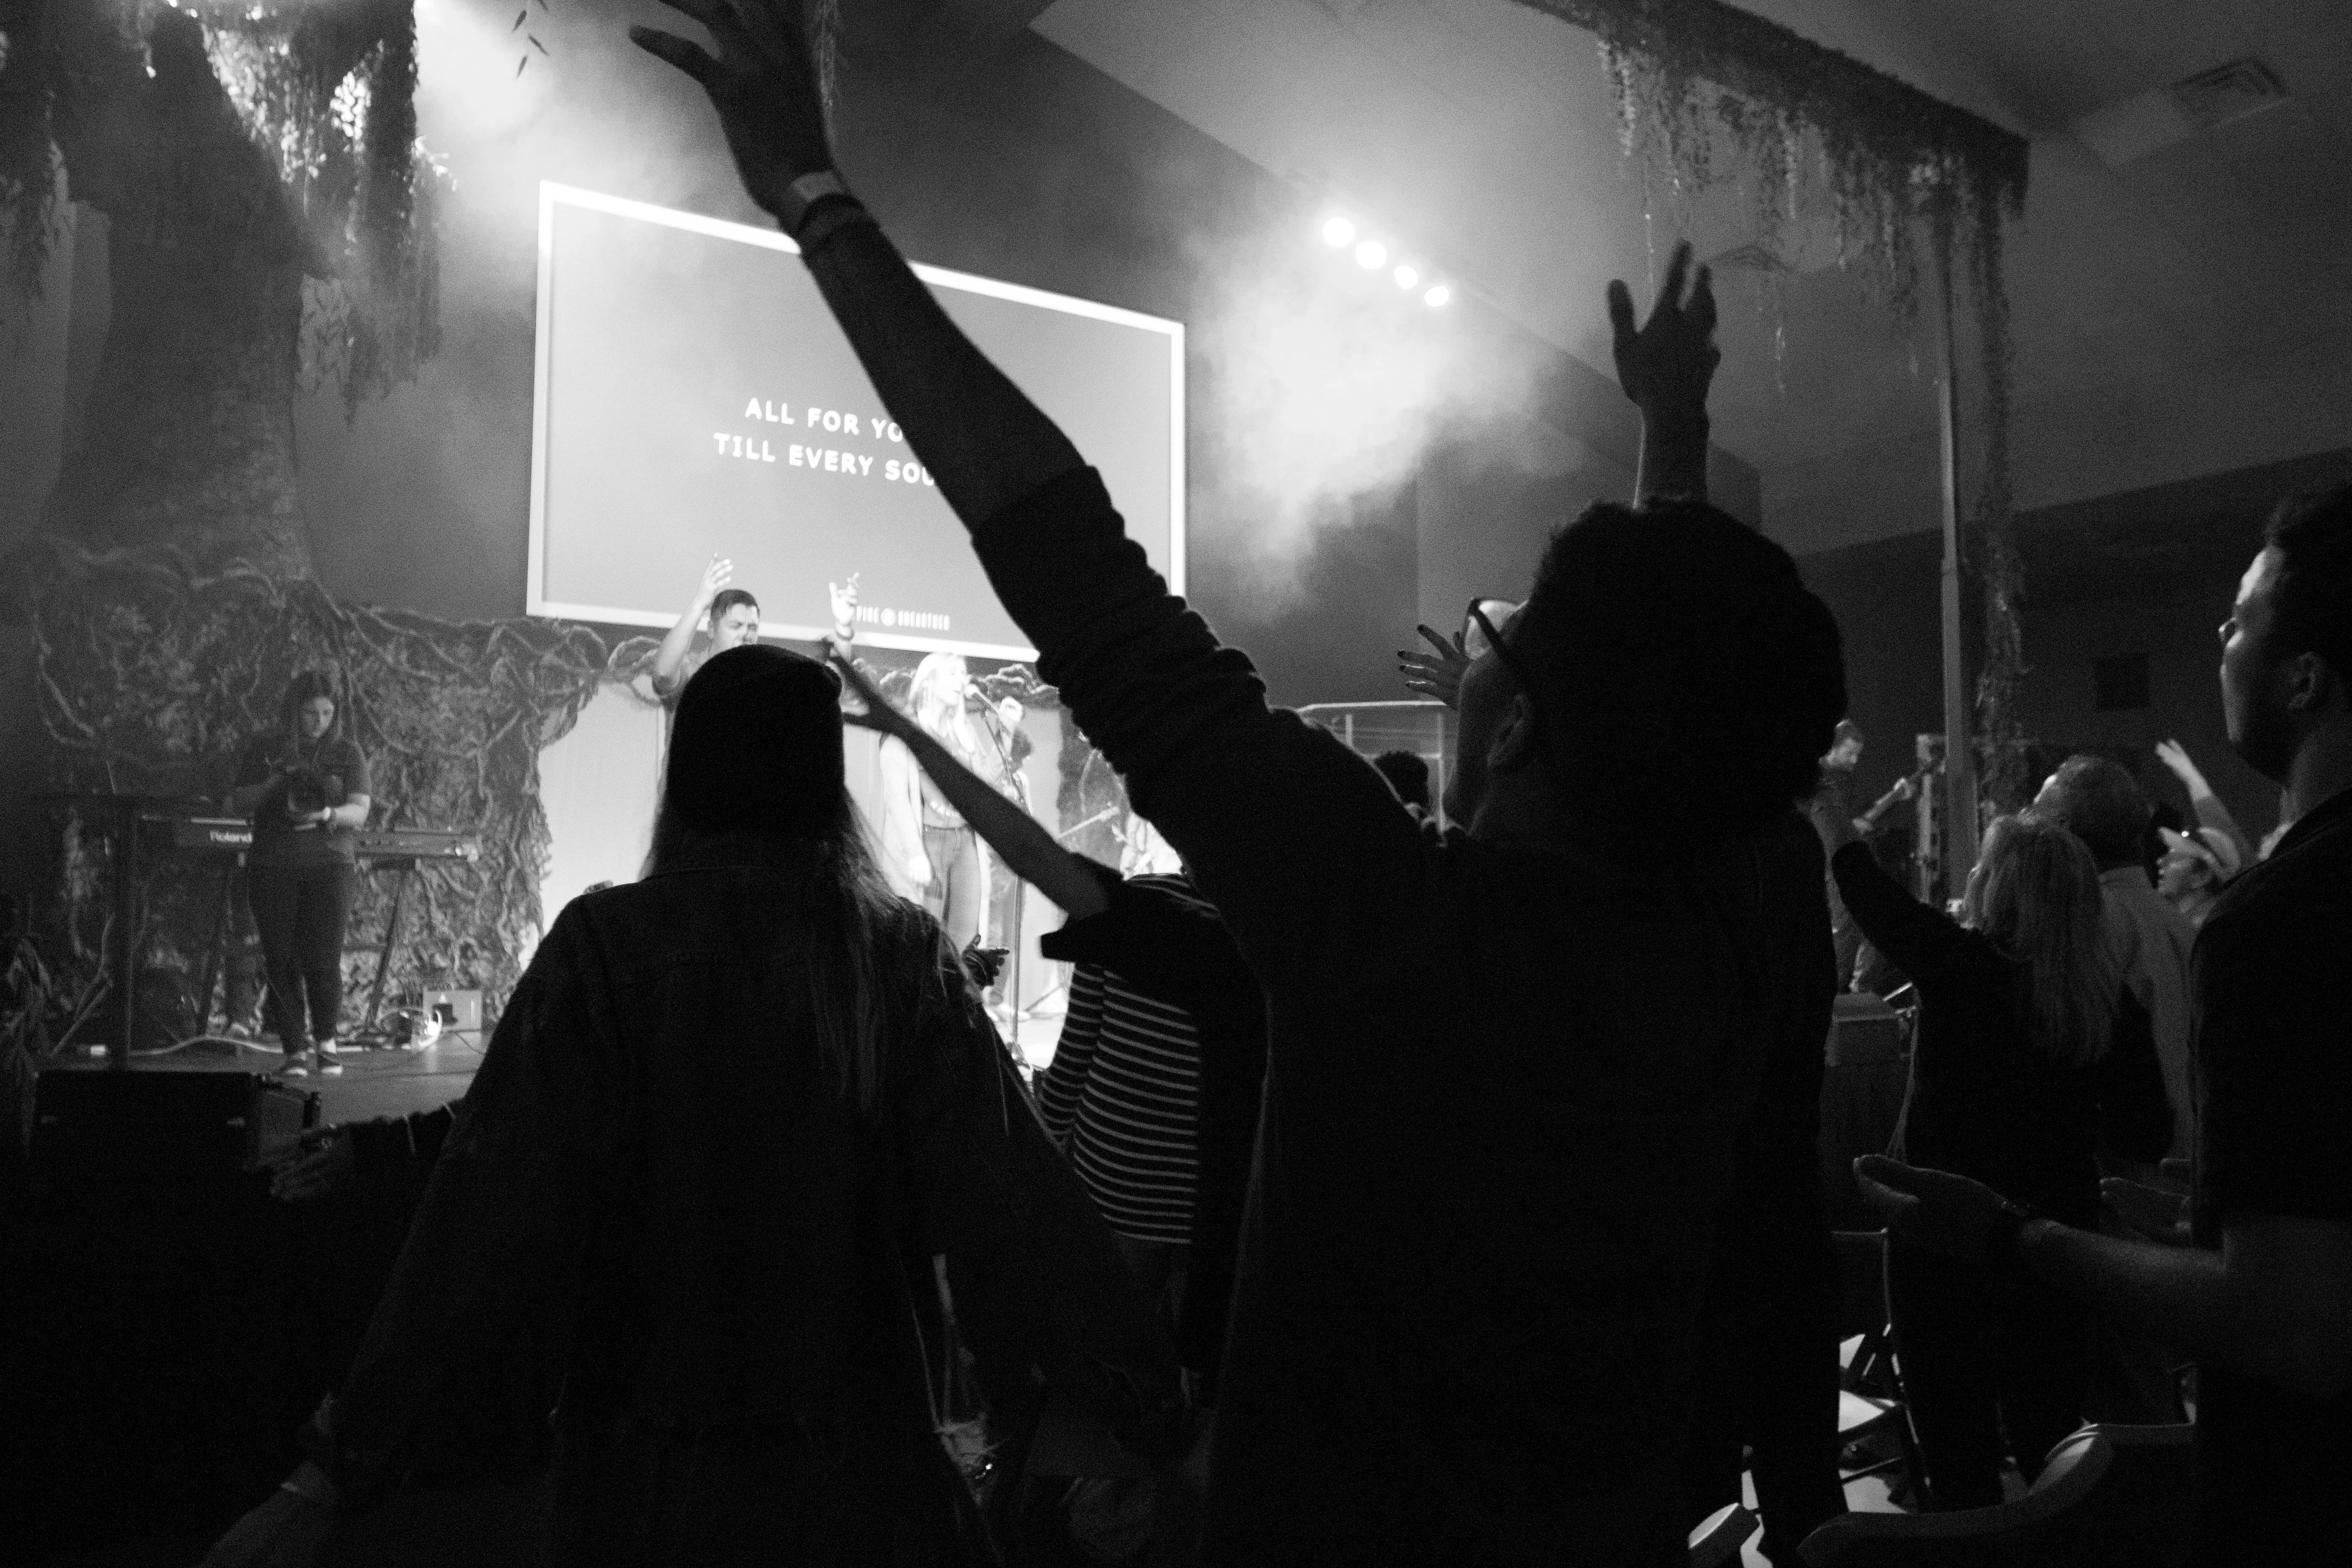 worship-ywam-missionary-people-inspire-hands